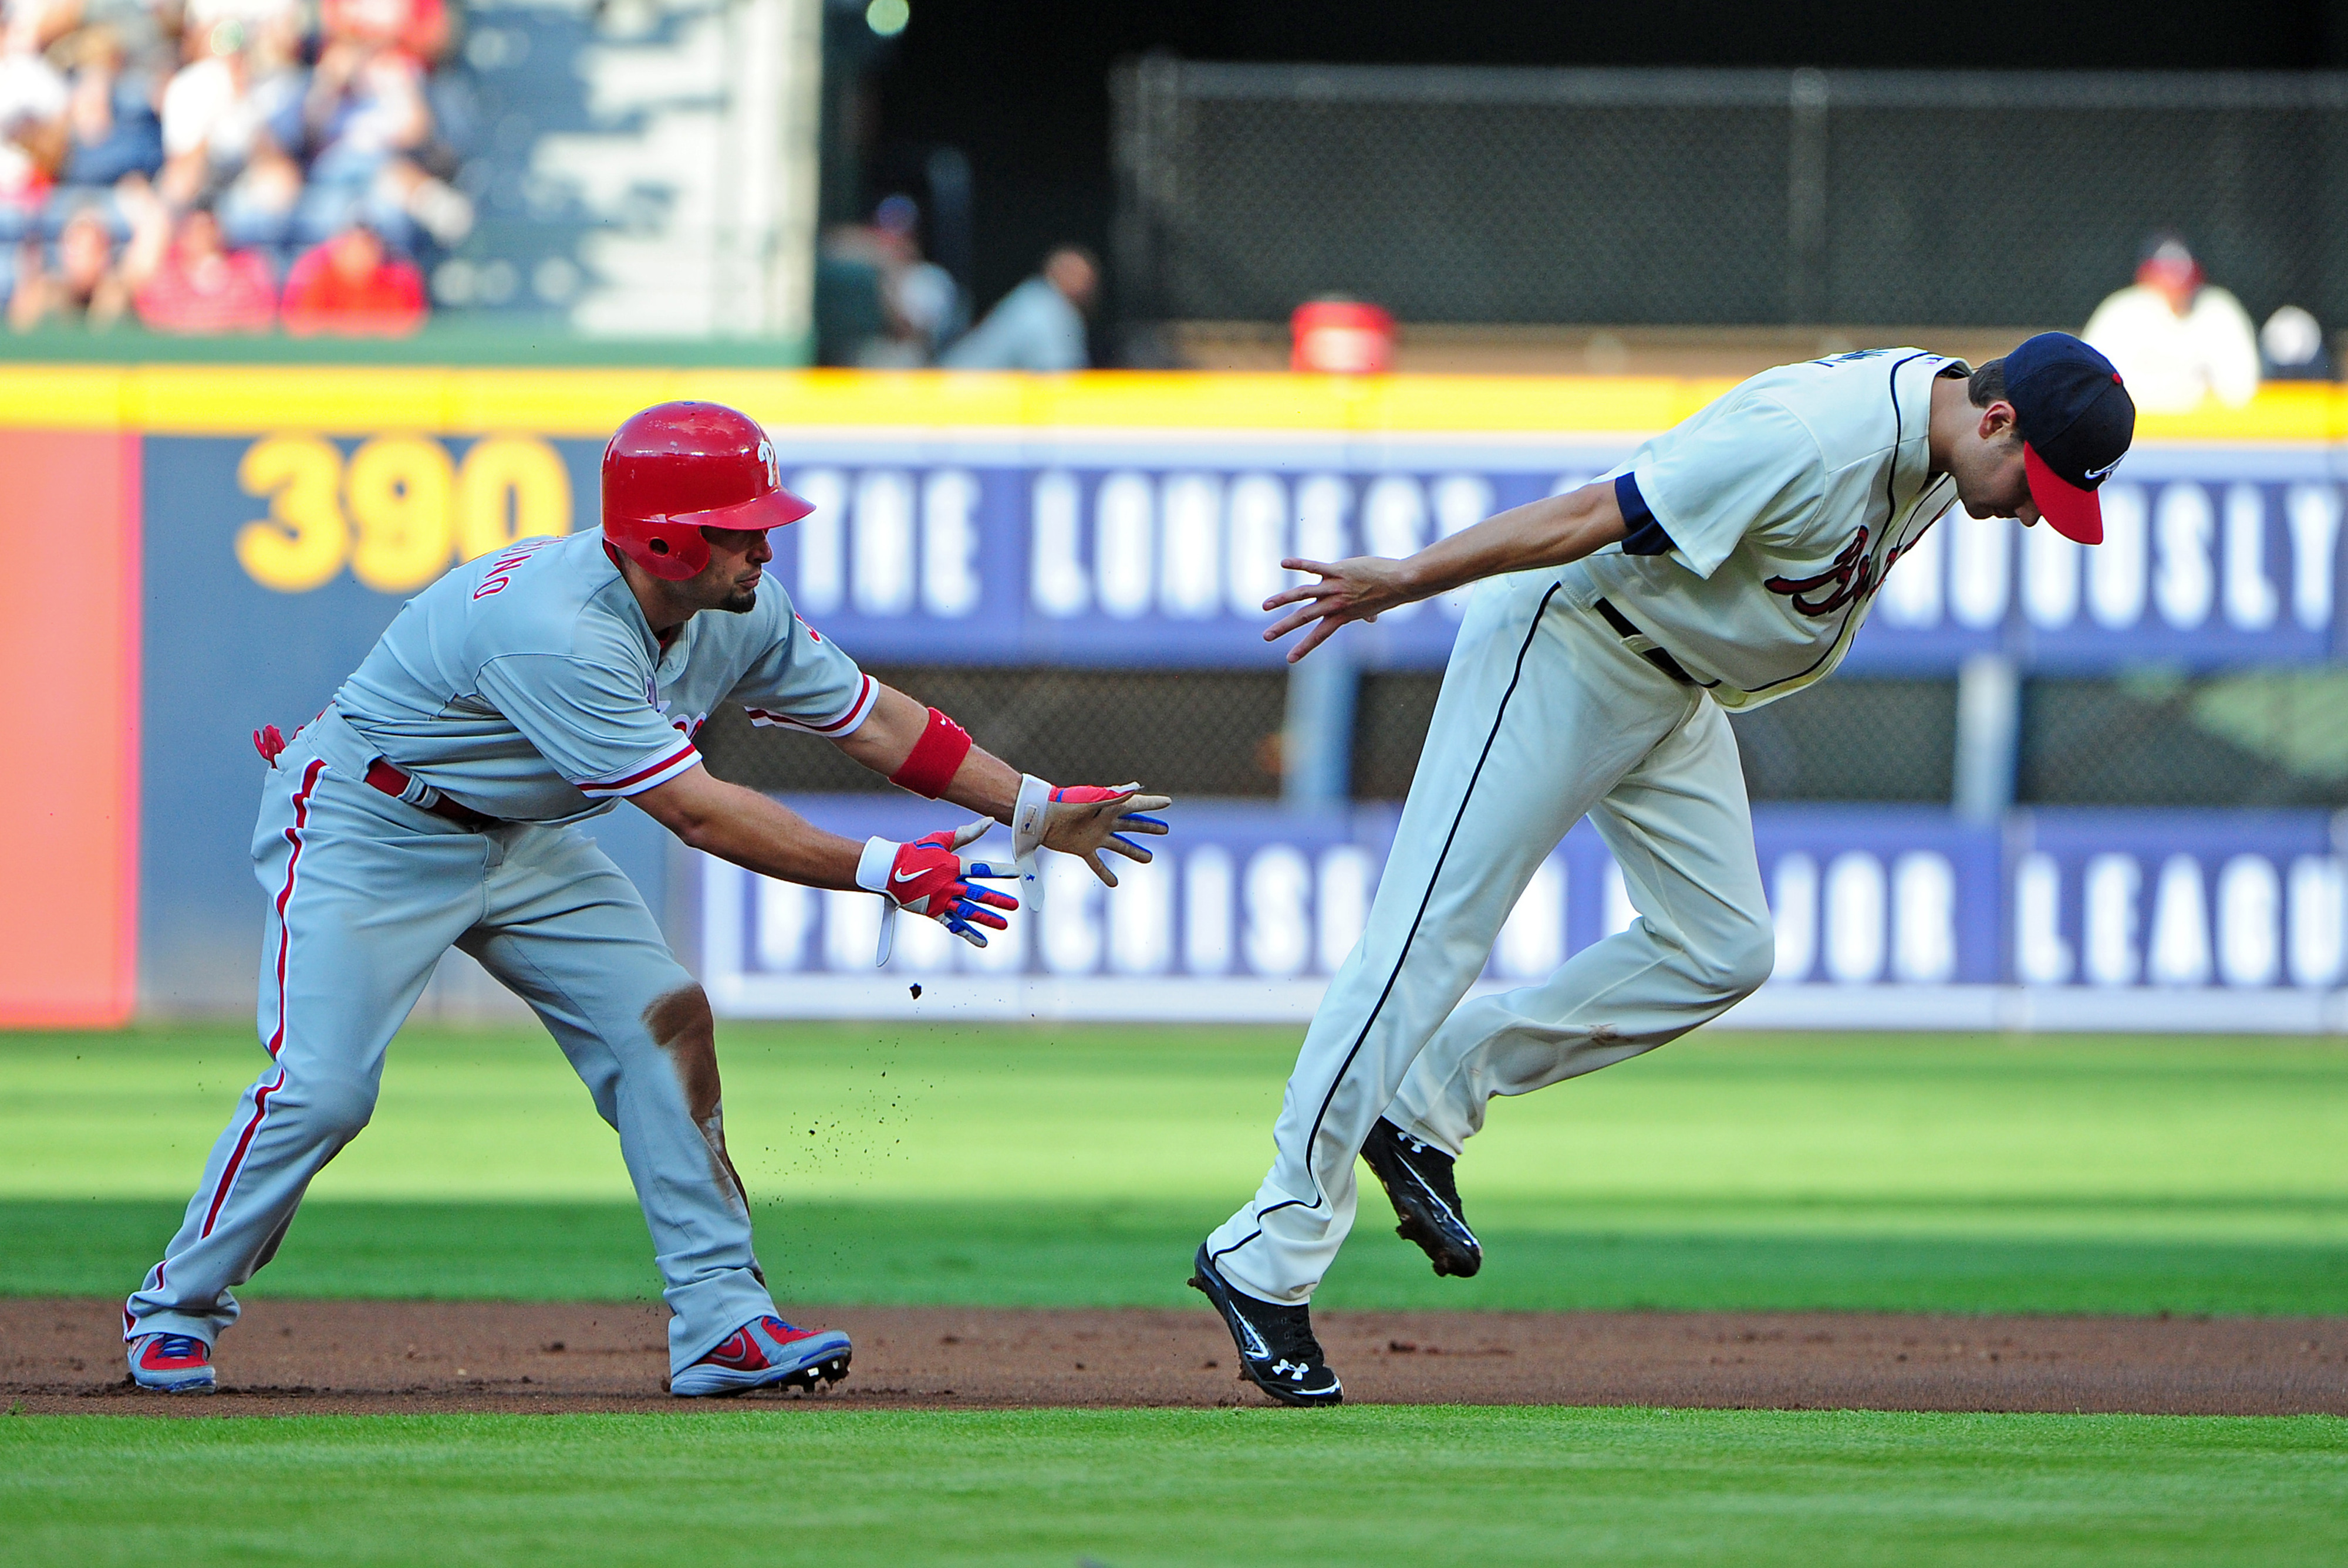 ATLANTA, GA: Paul Janish #4 of the Atlanta Braves completes a double play against Shane Victorino #8 of the Philadelphia Phillies at Turner Field in Atlanta, Georgia. (Photo by Scott Cunningham/Getty Images)